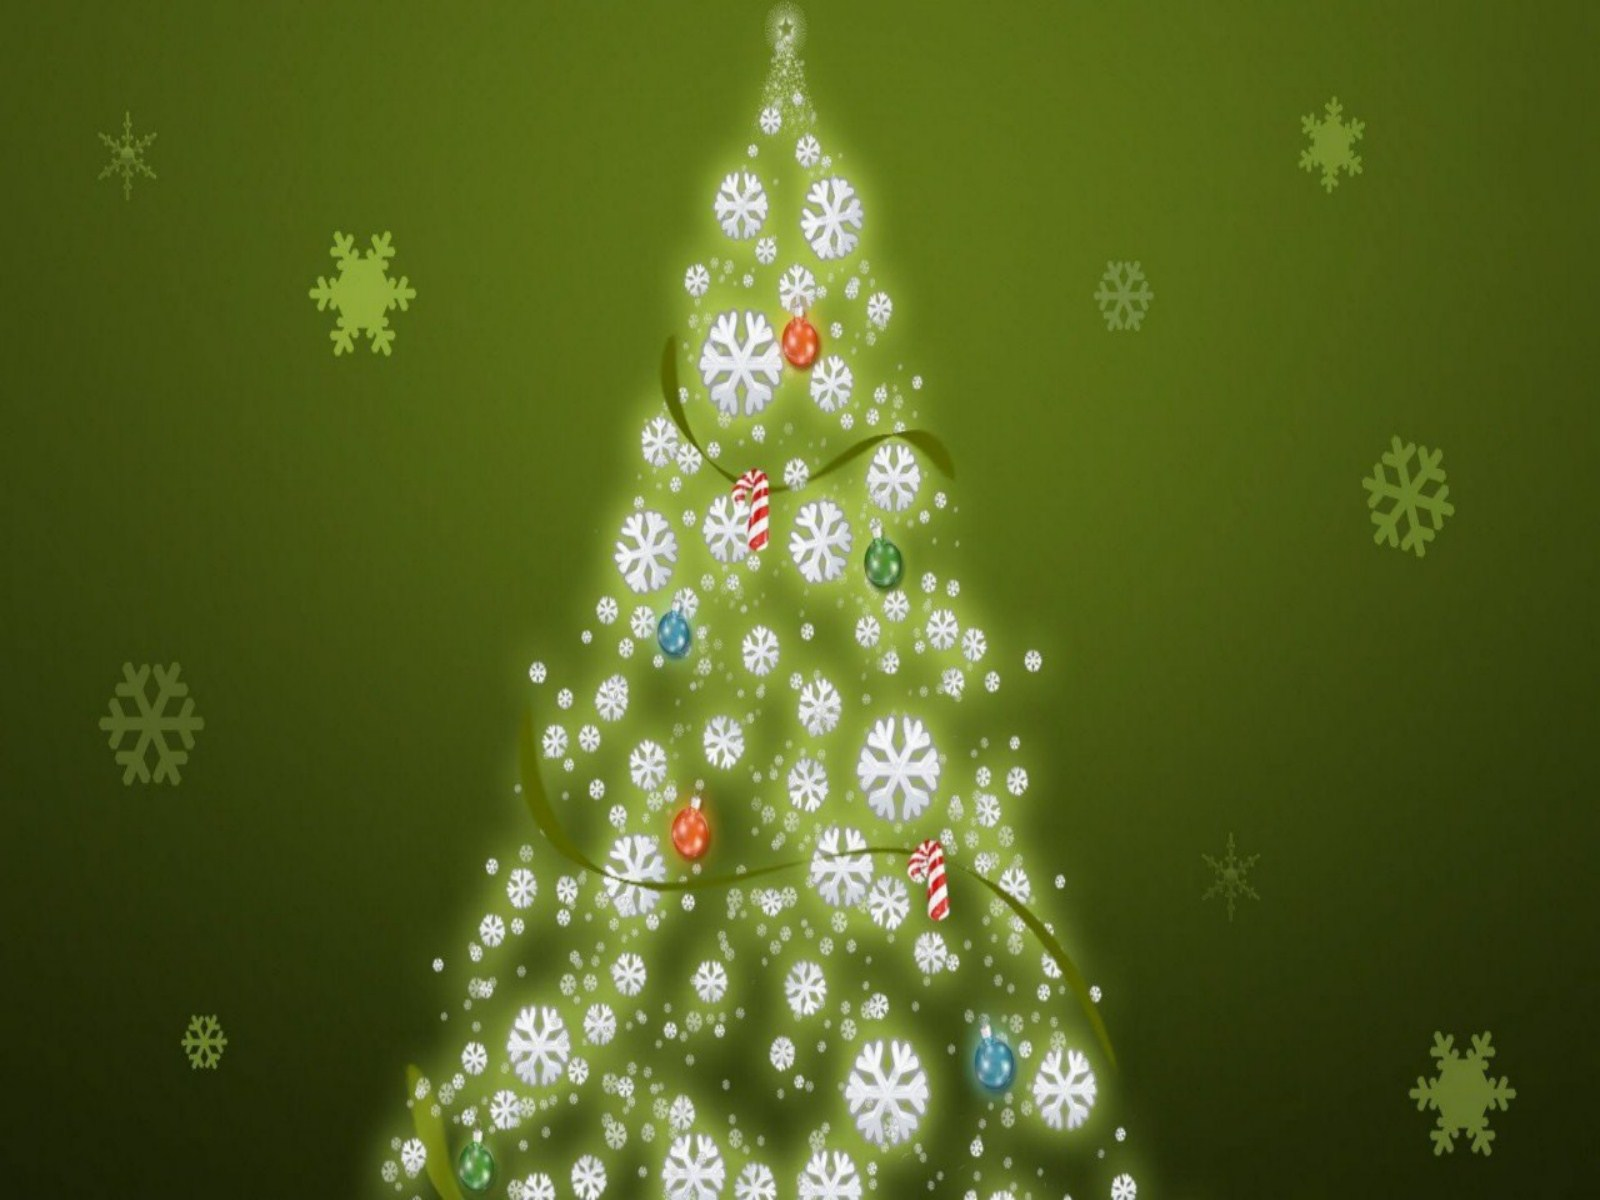 HD Christmas Tree Desktop Wallpaper iPhone Wallpapers and Backgrounds 1600x1200